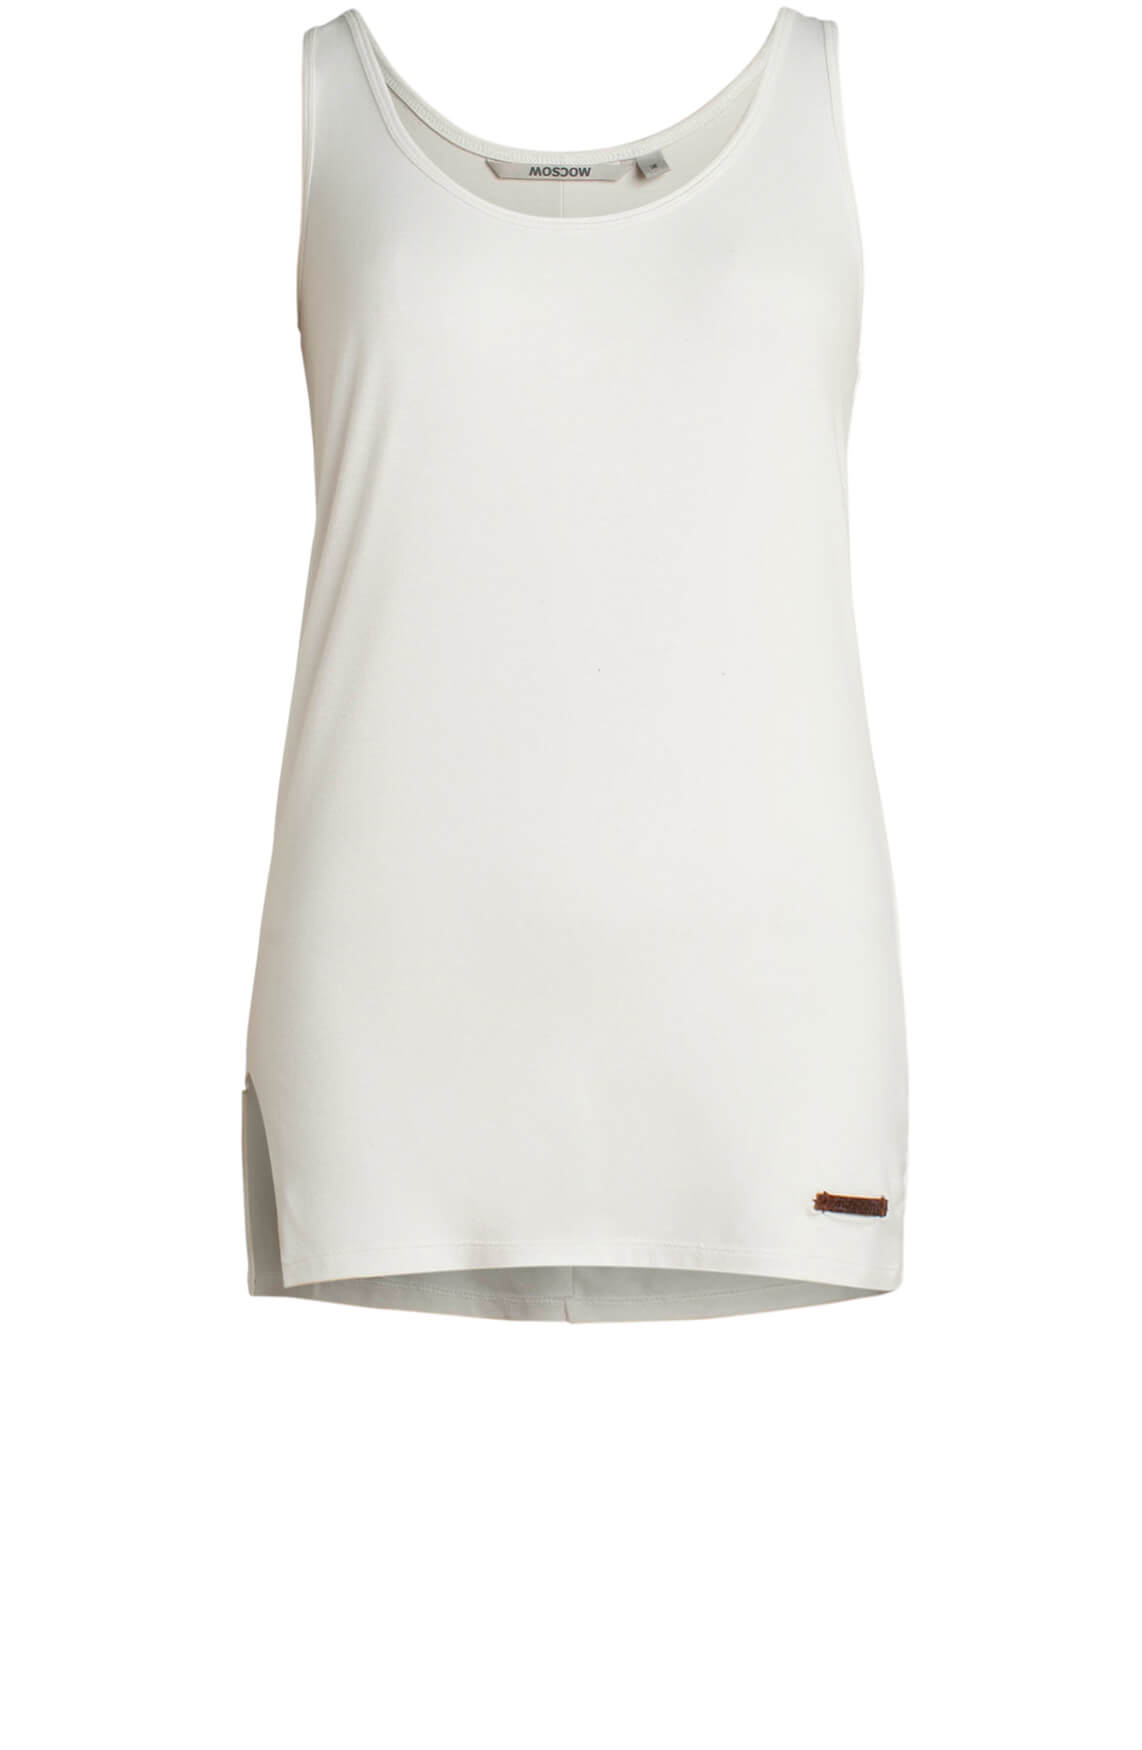 Moscow Dames Bamboo top wit